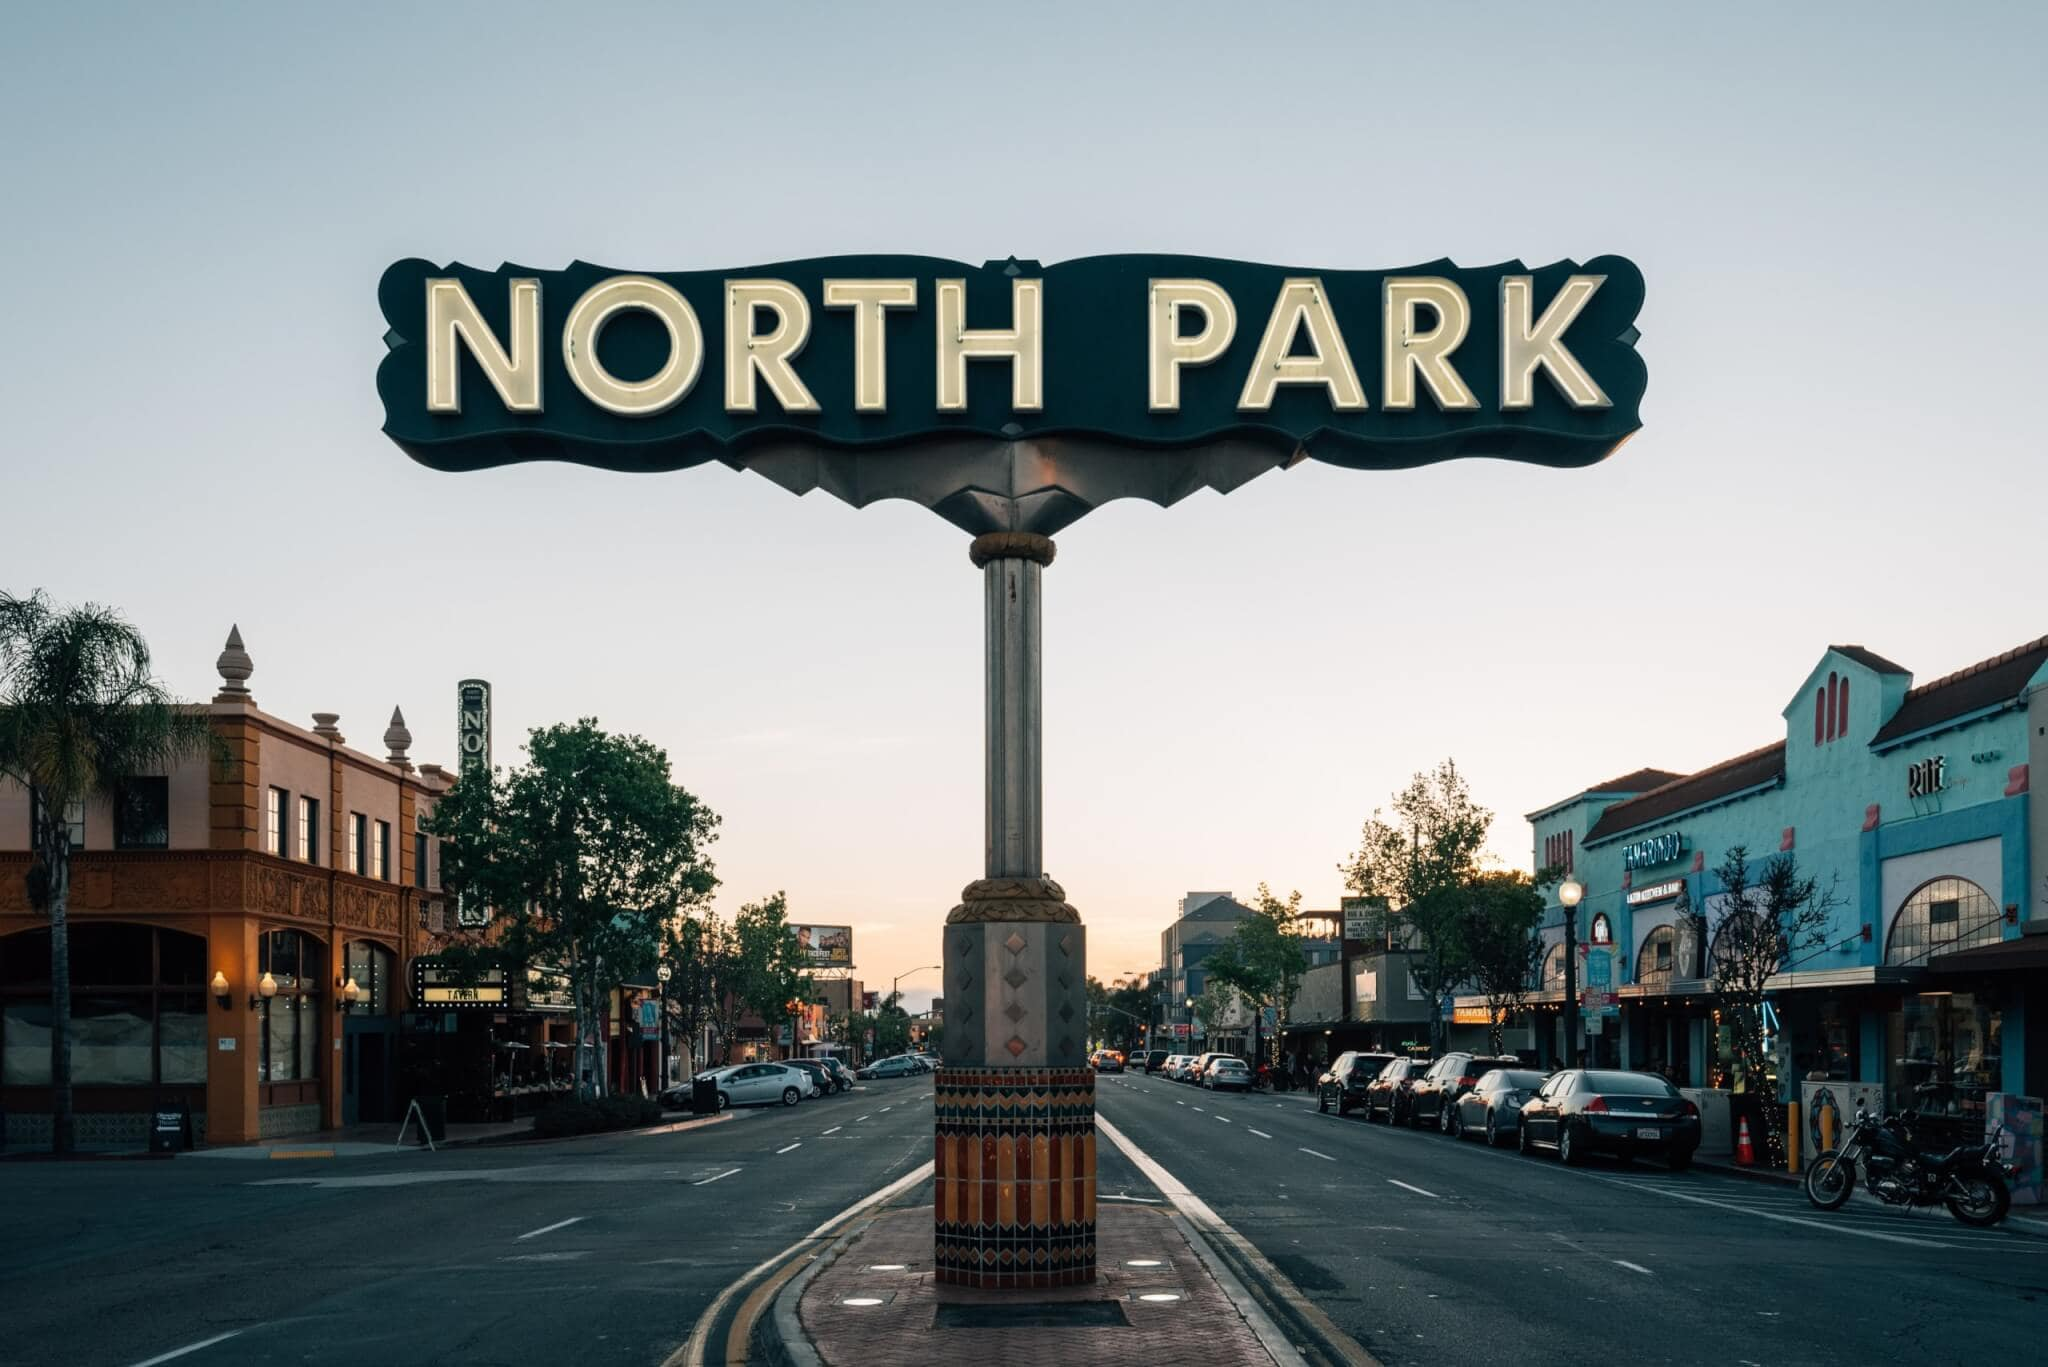 Sign for North Park neighborhood in San Diego, CA